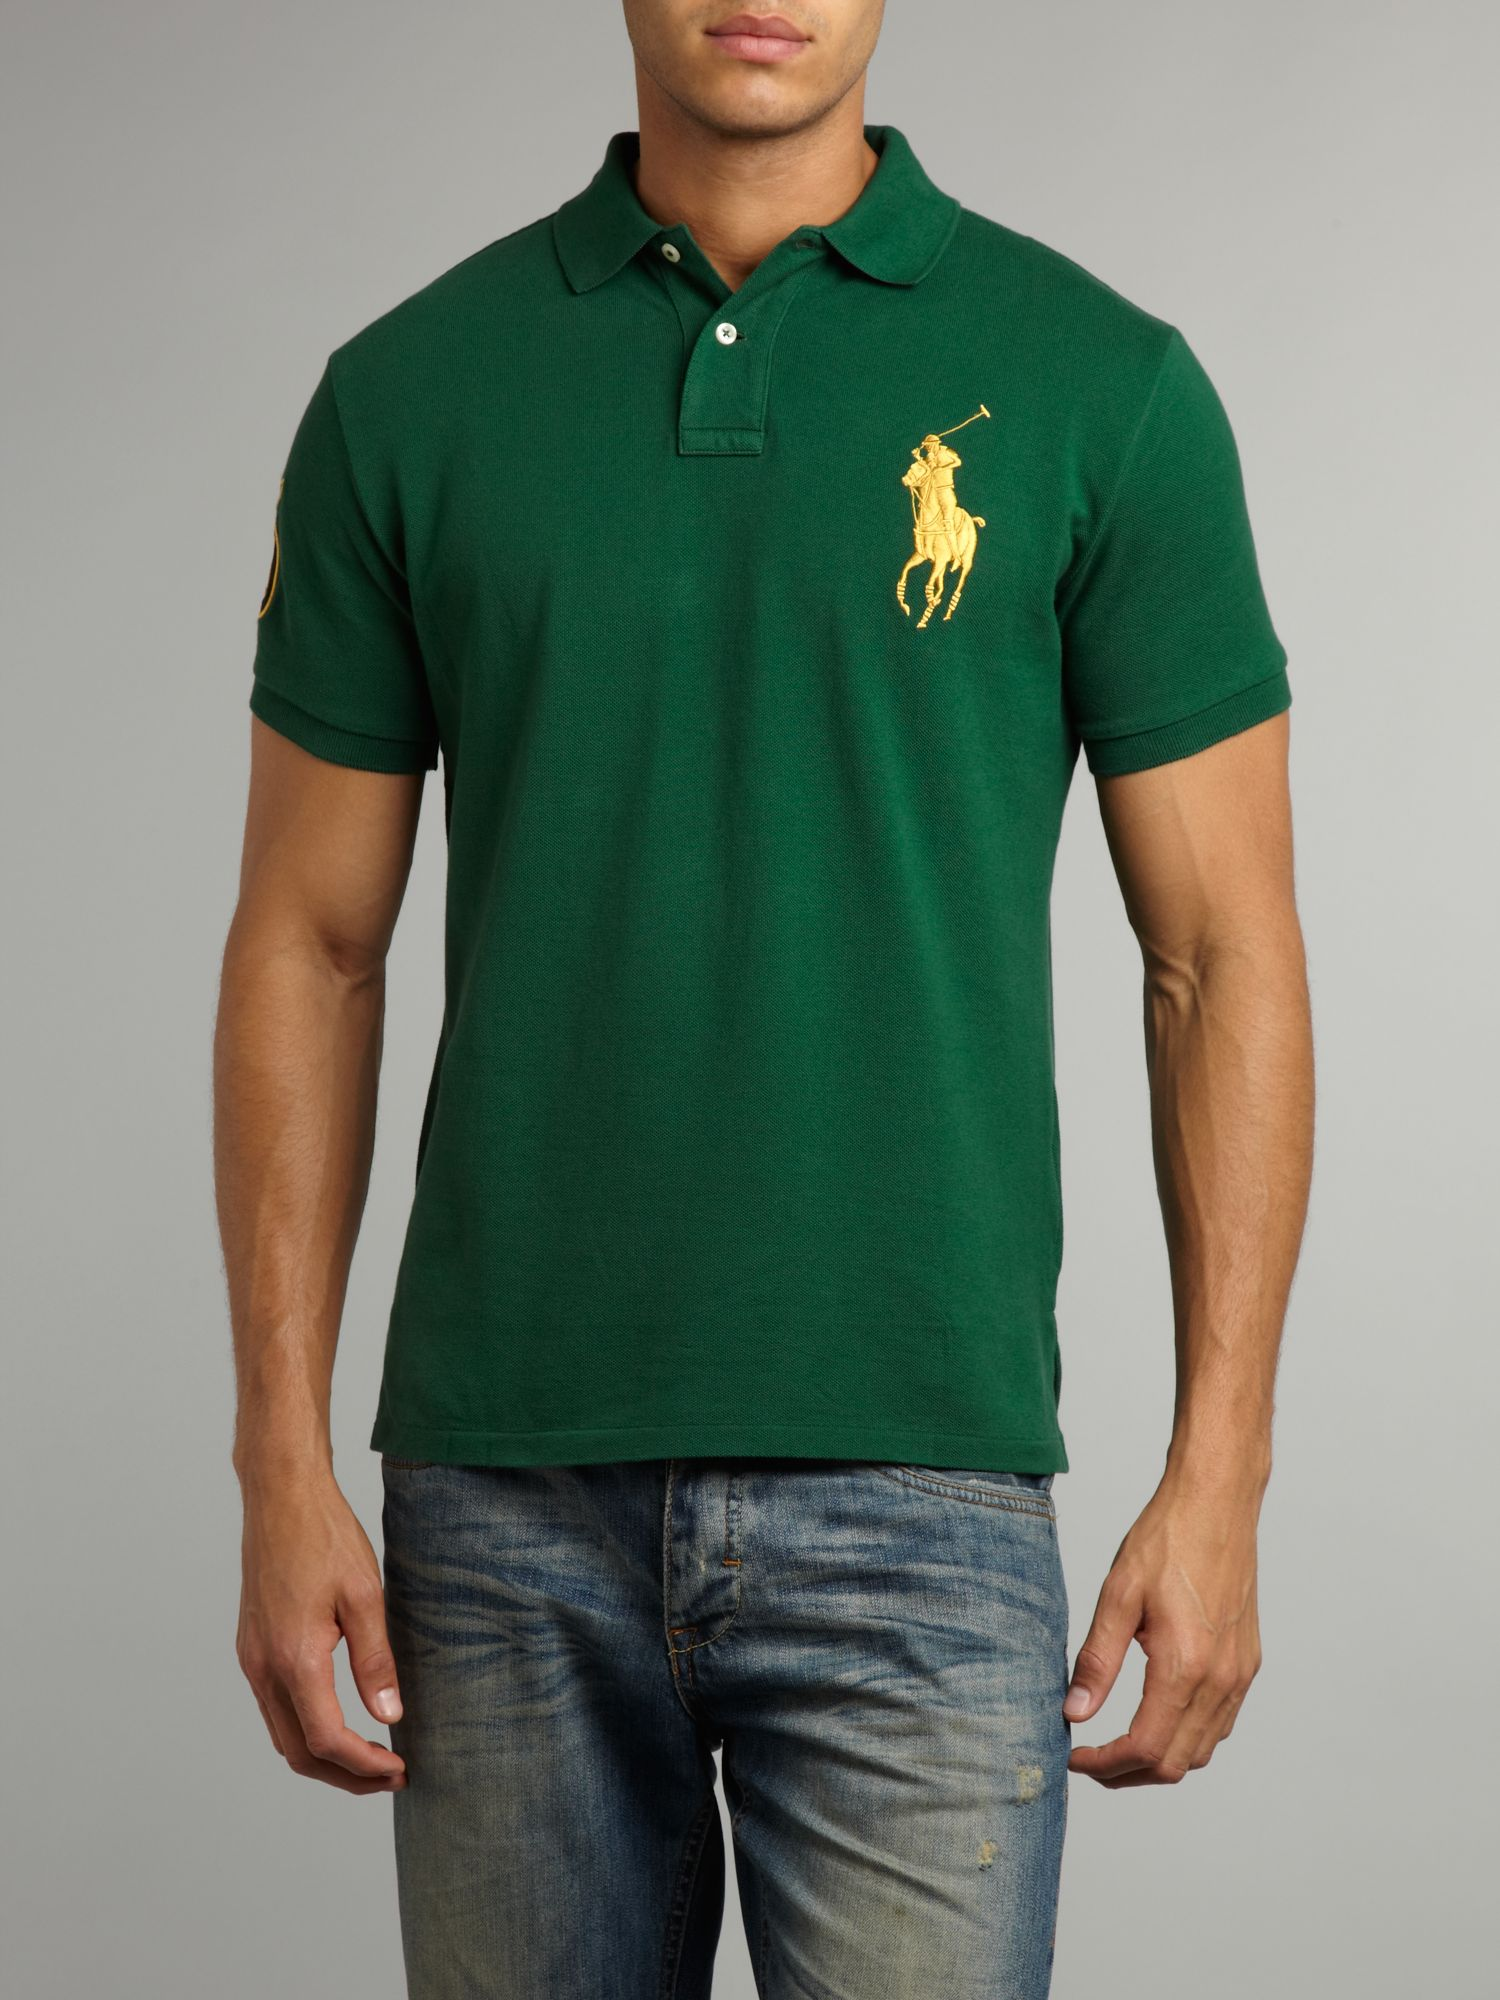 Ralph lauren hooded big pony cotton jacket green for Polo shirt with jacket